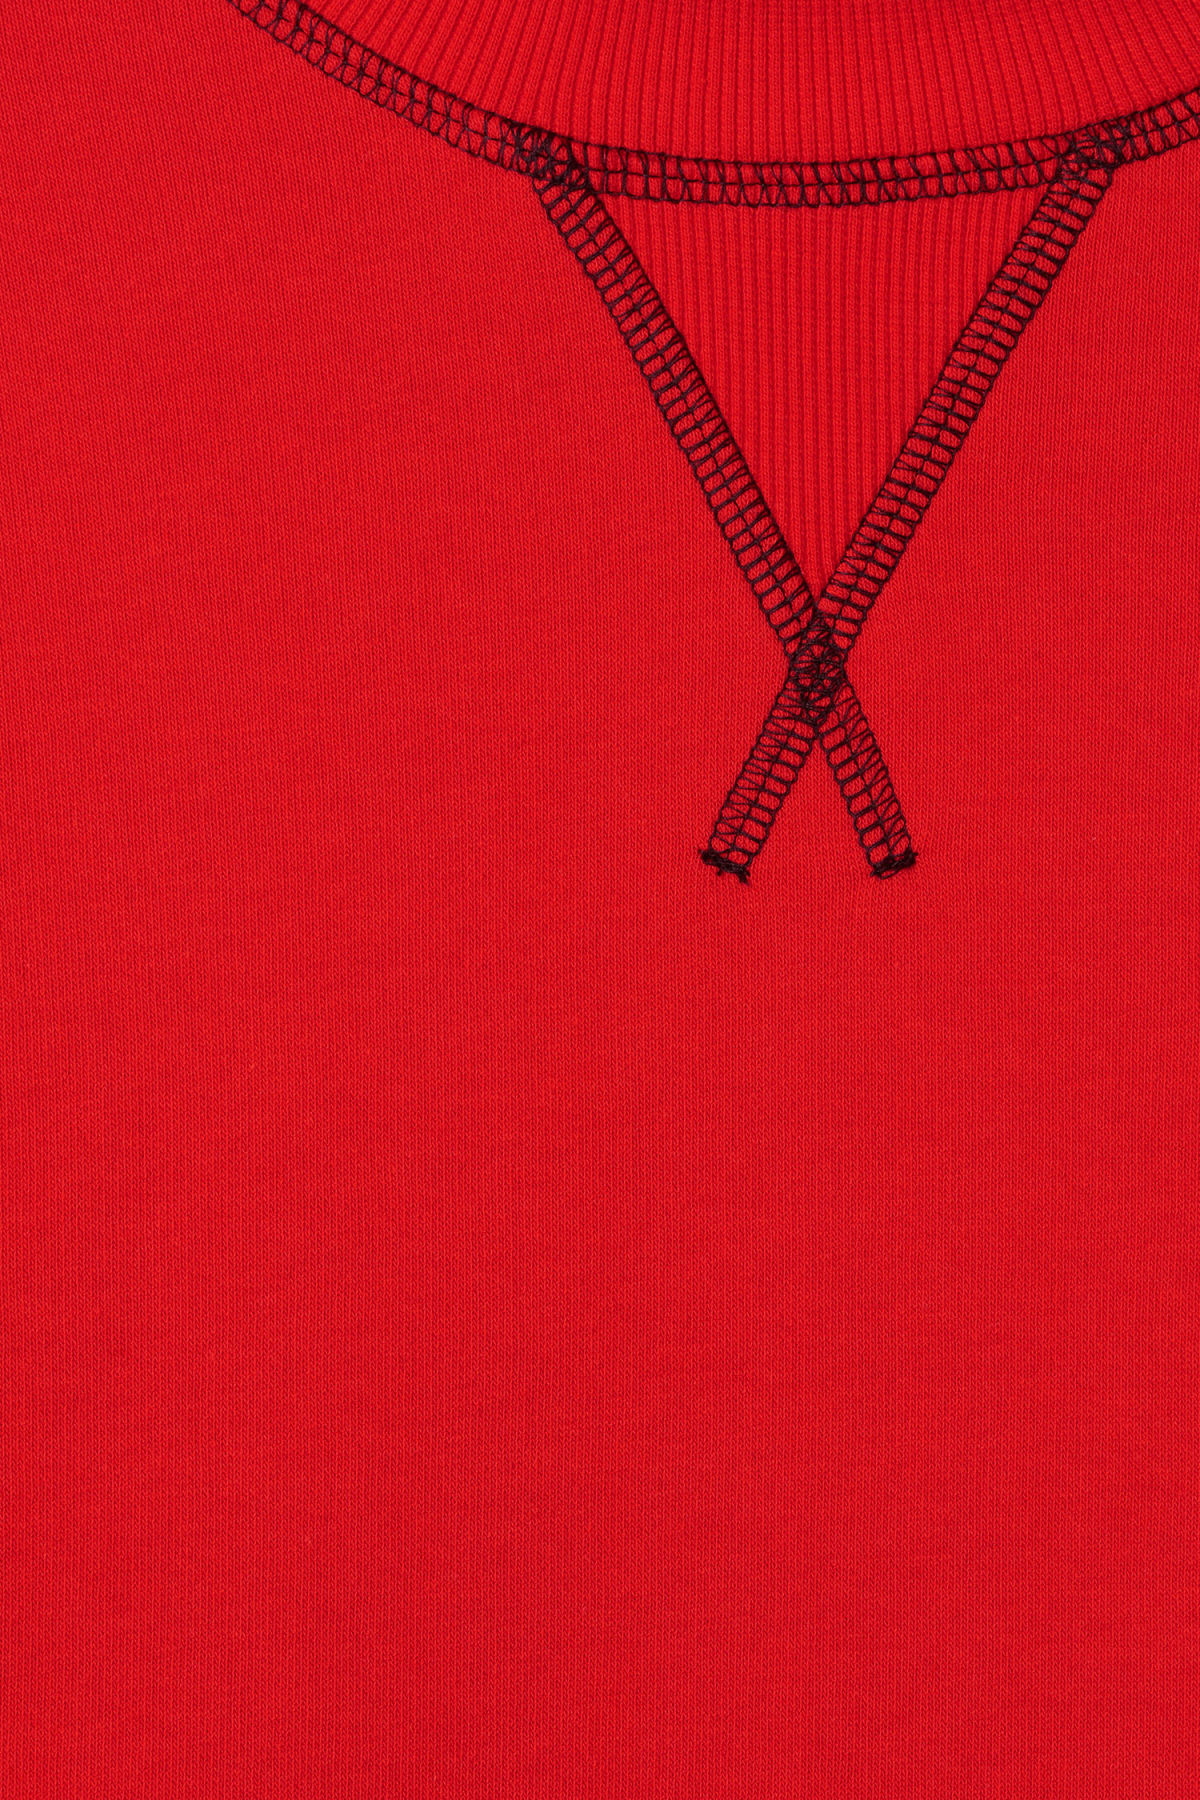 Detailed image of Weekday syntax sweatshirt in red